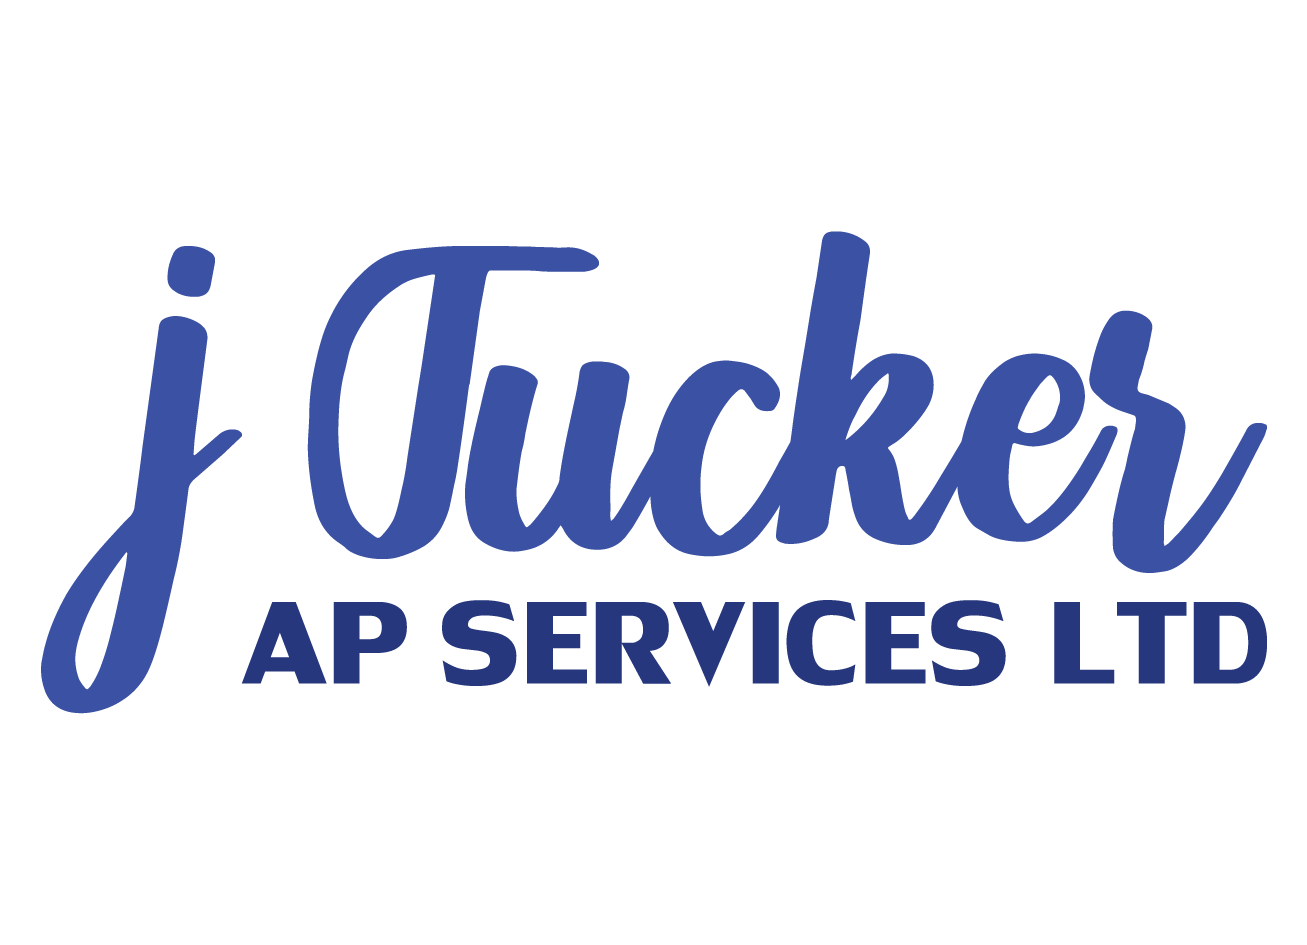 J Tucker AP Services Ltd